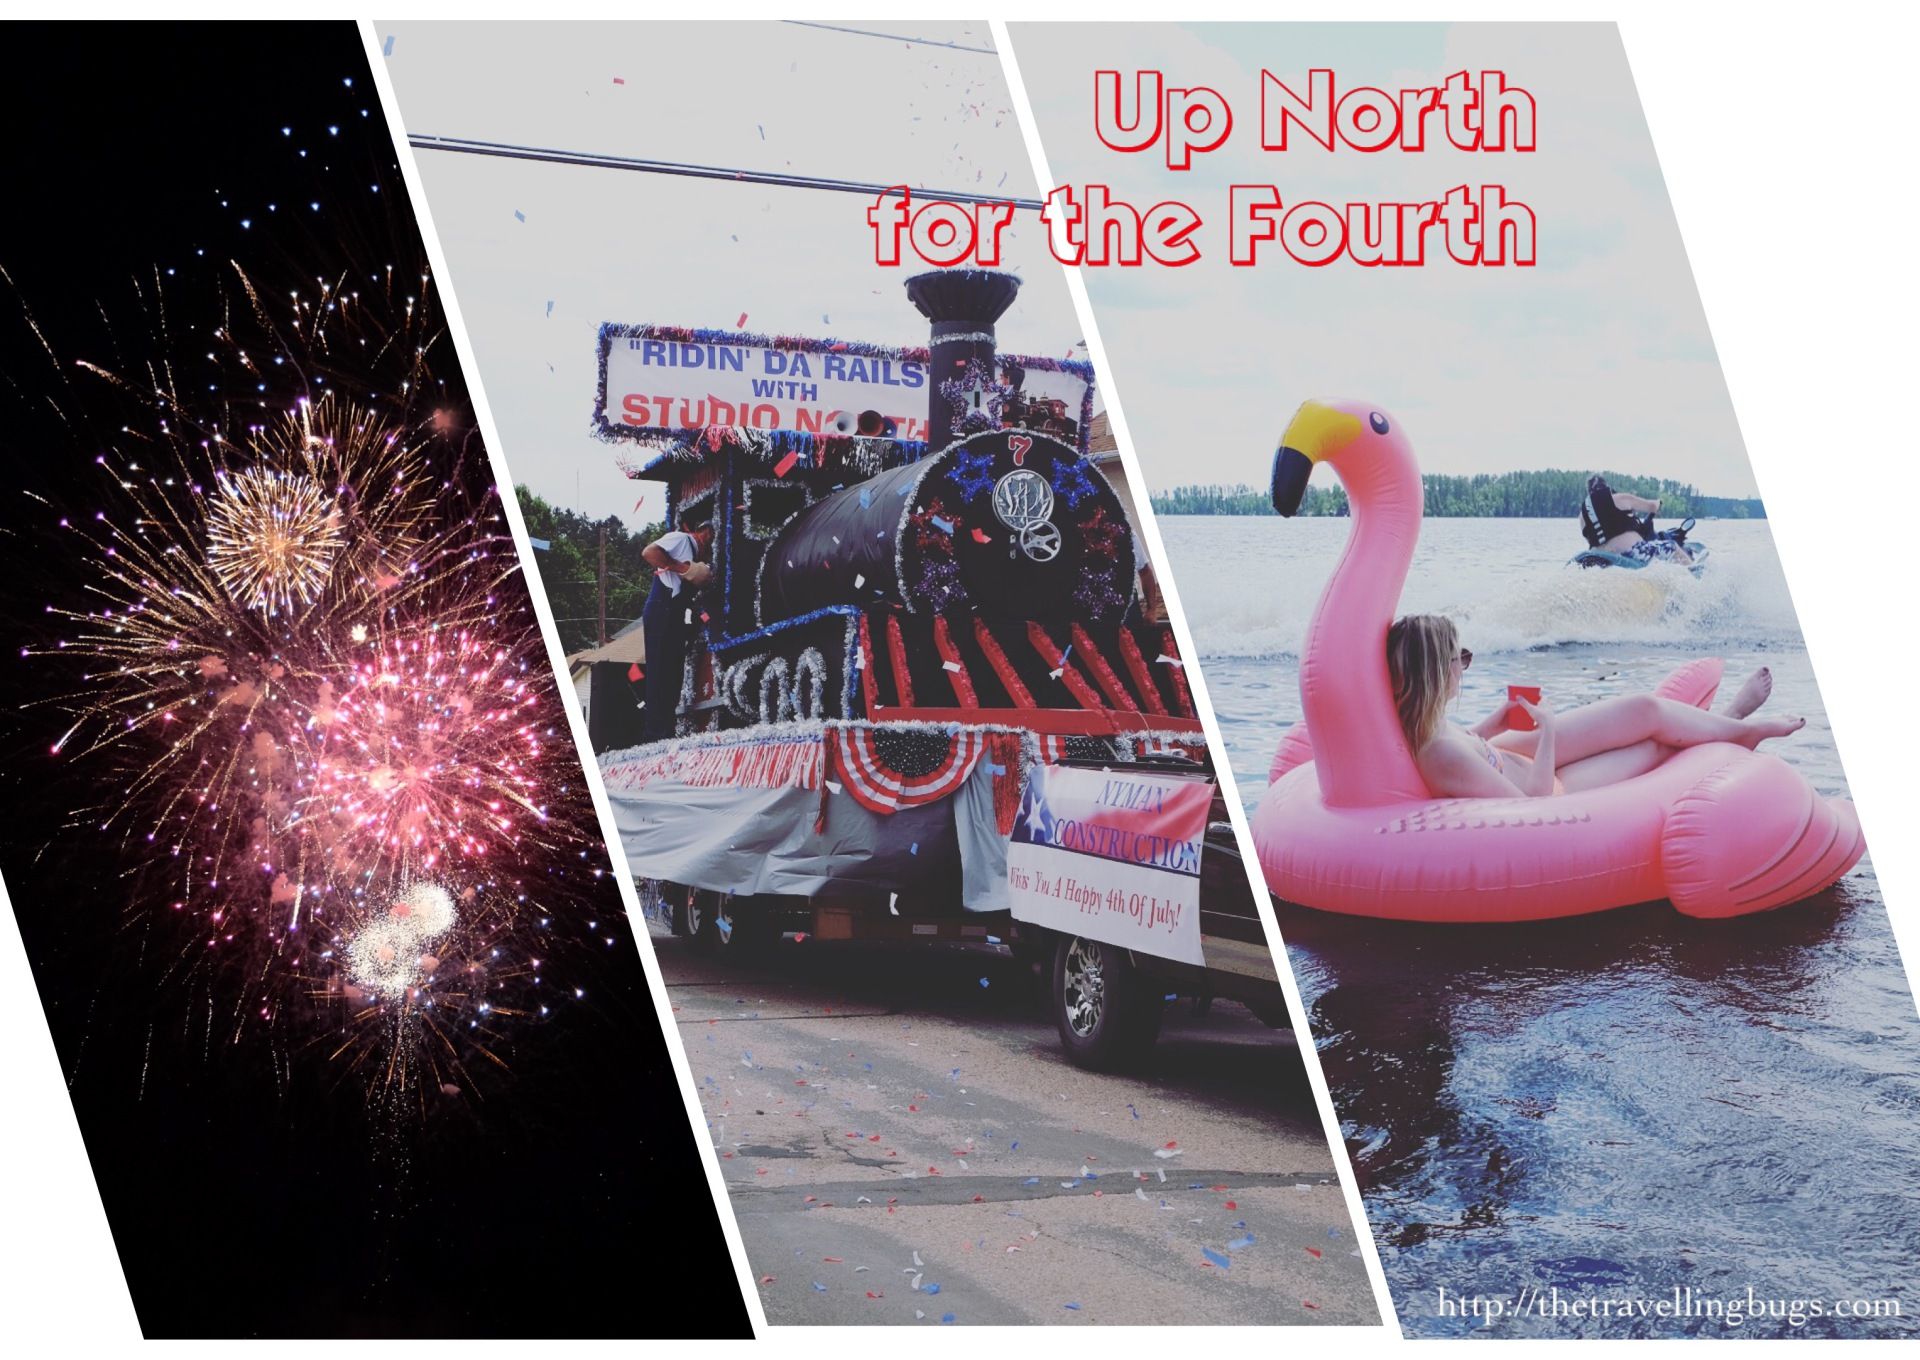 Up North for the Fourth